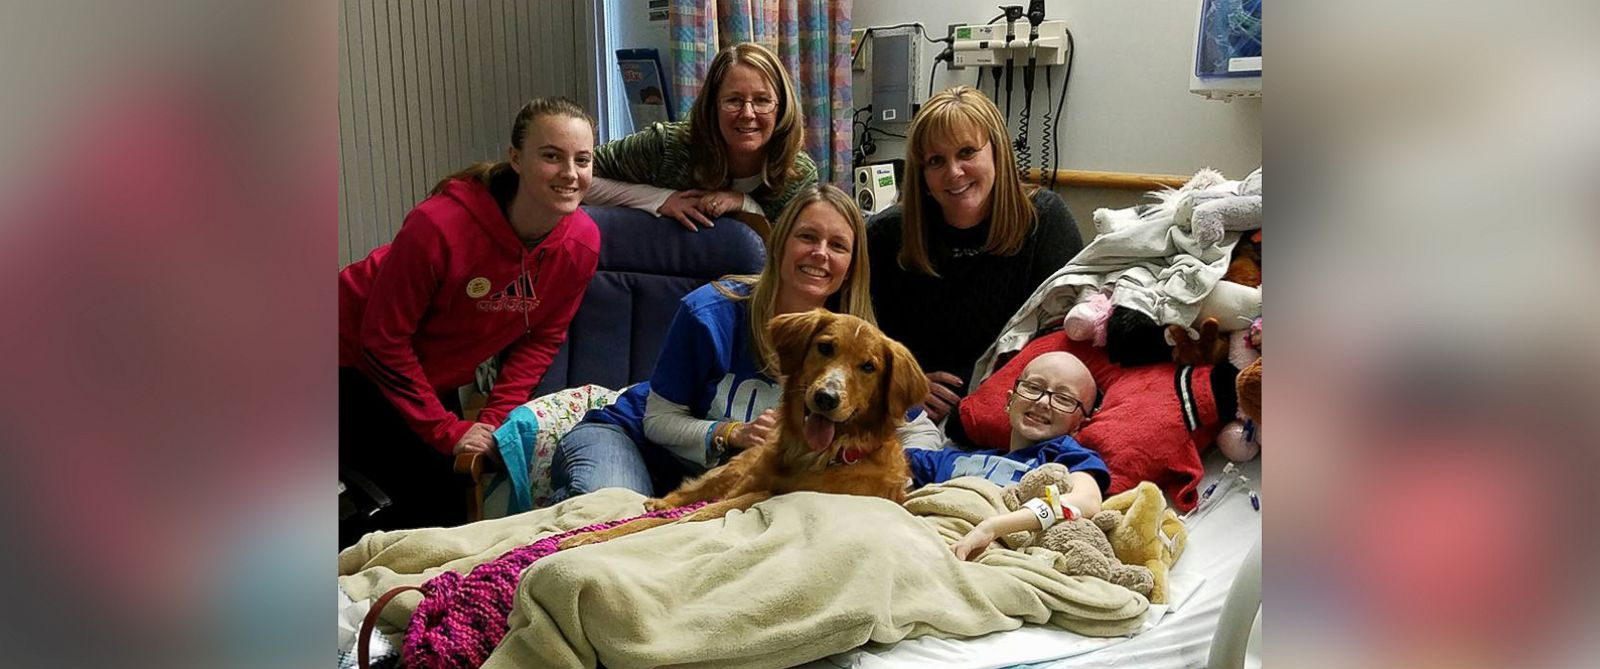 "PHOTO: Brooke Mulford was granted wish of seeing inspiration film ""A Dogs Purpose"" and even got a visit from screenwriter Cathryn Michon and the films star dog, Trip."